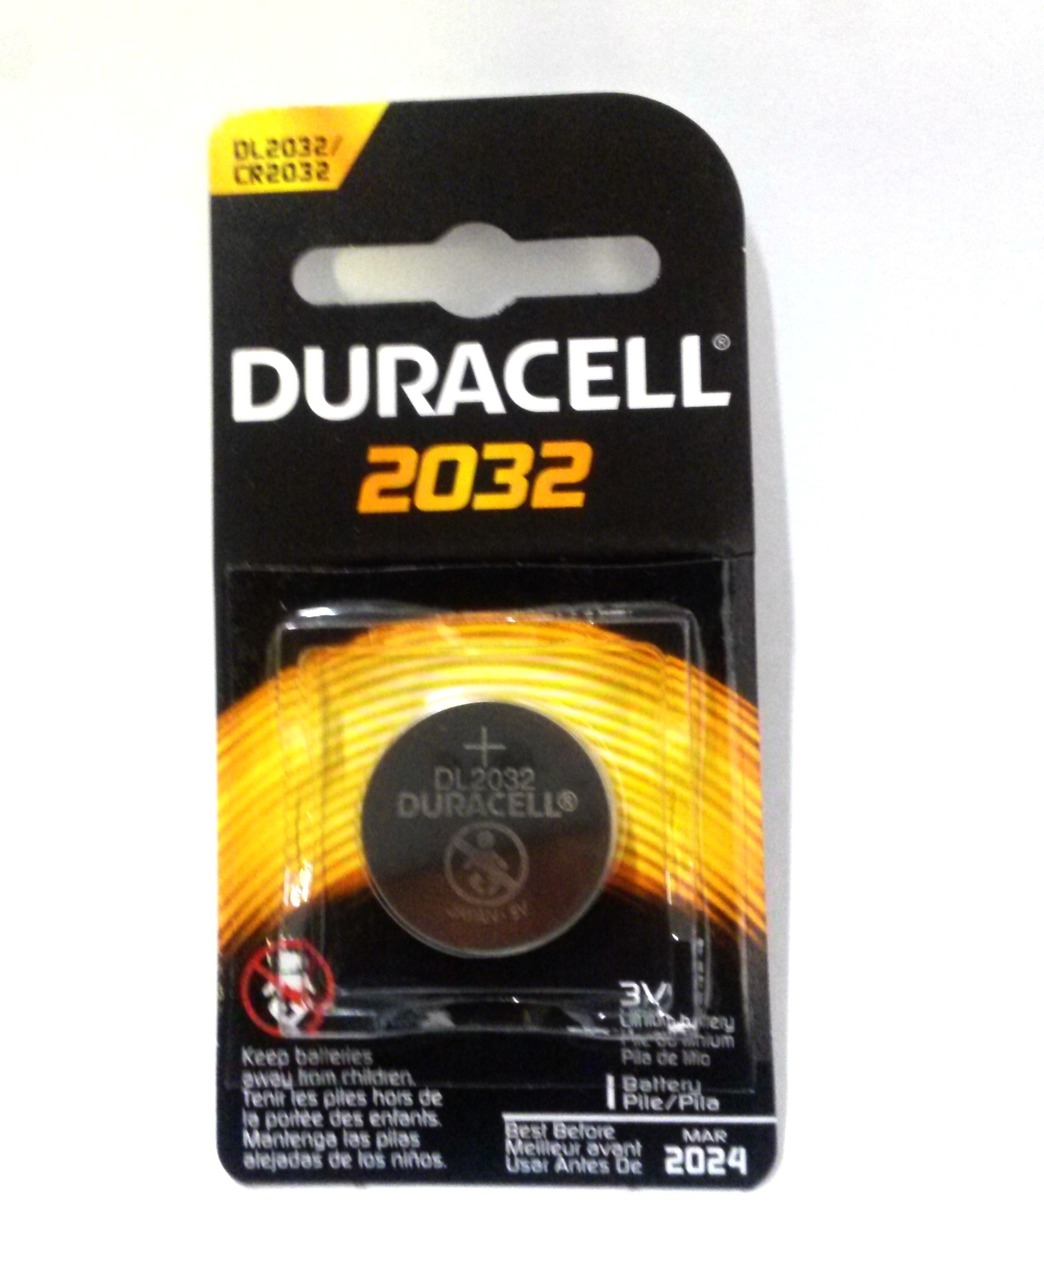 Duracell CR2032 Coin Battery - 1 Pack Retail Carded